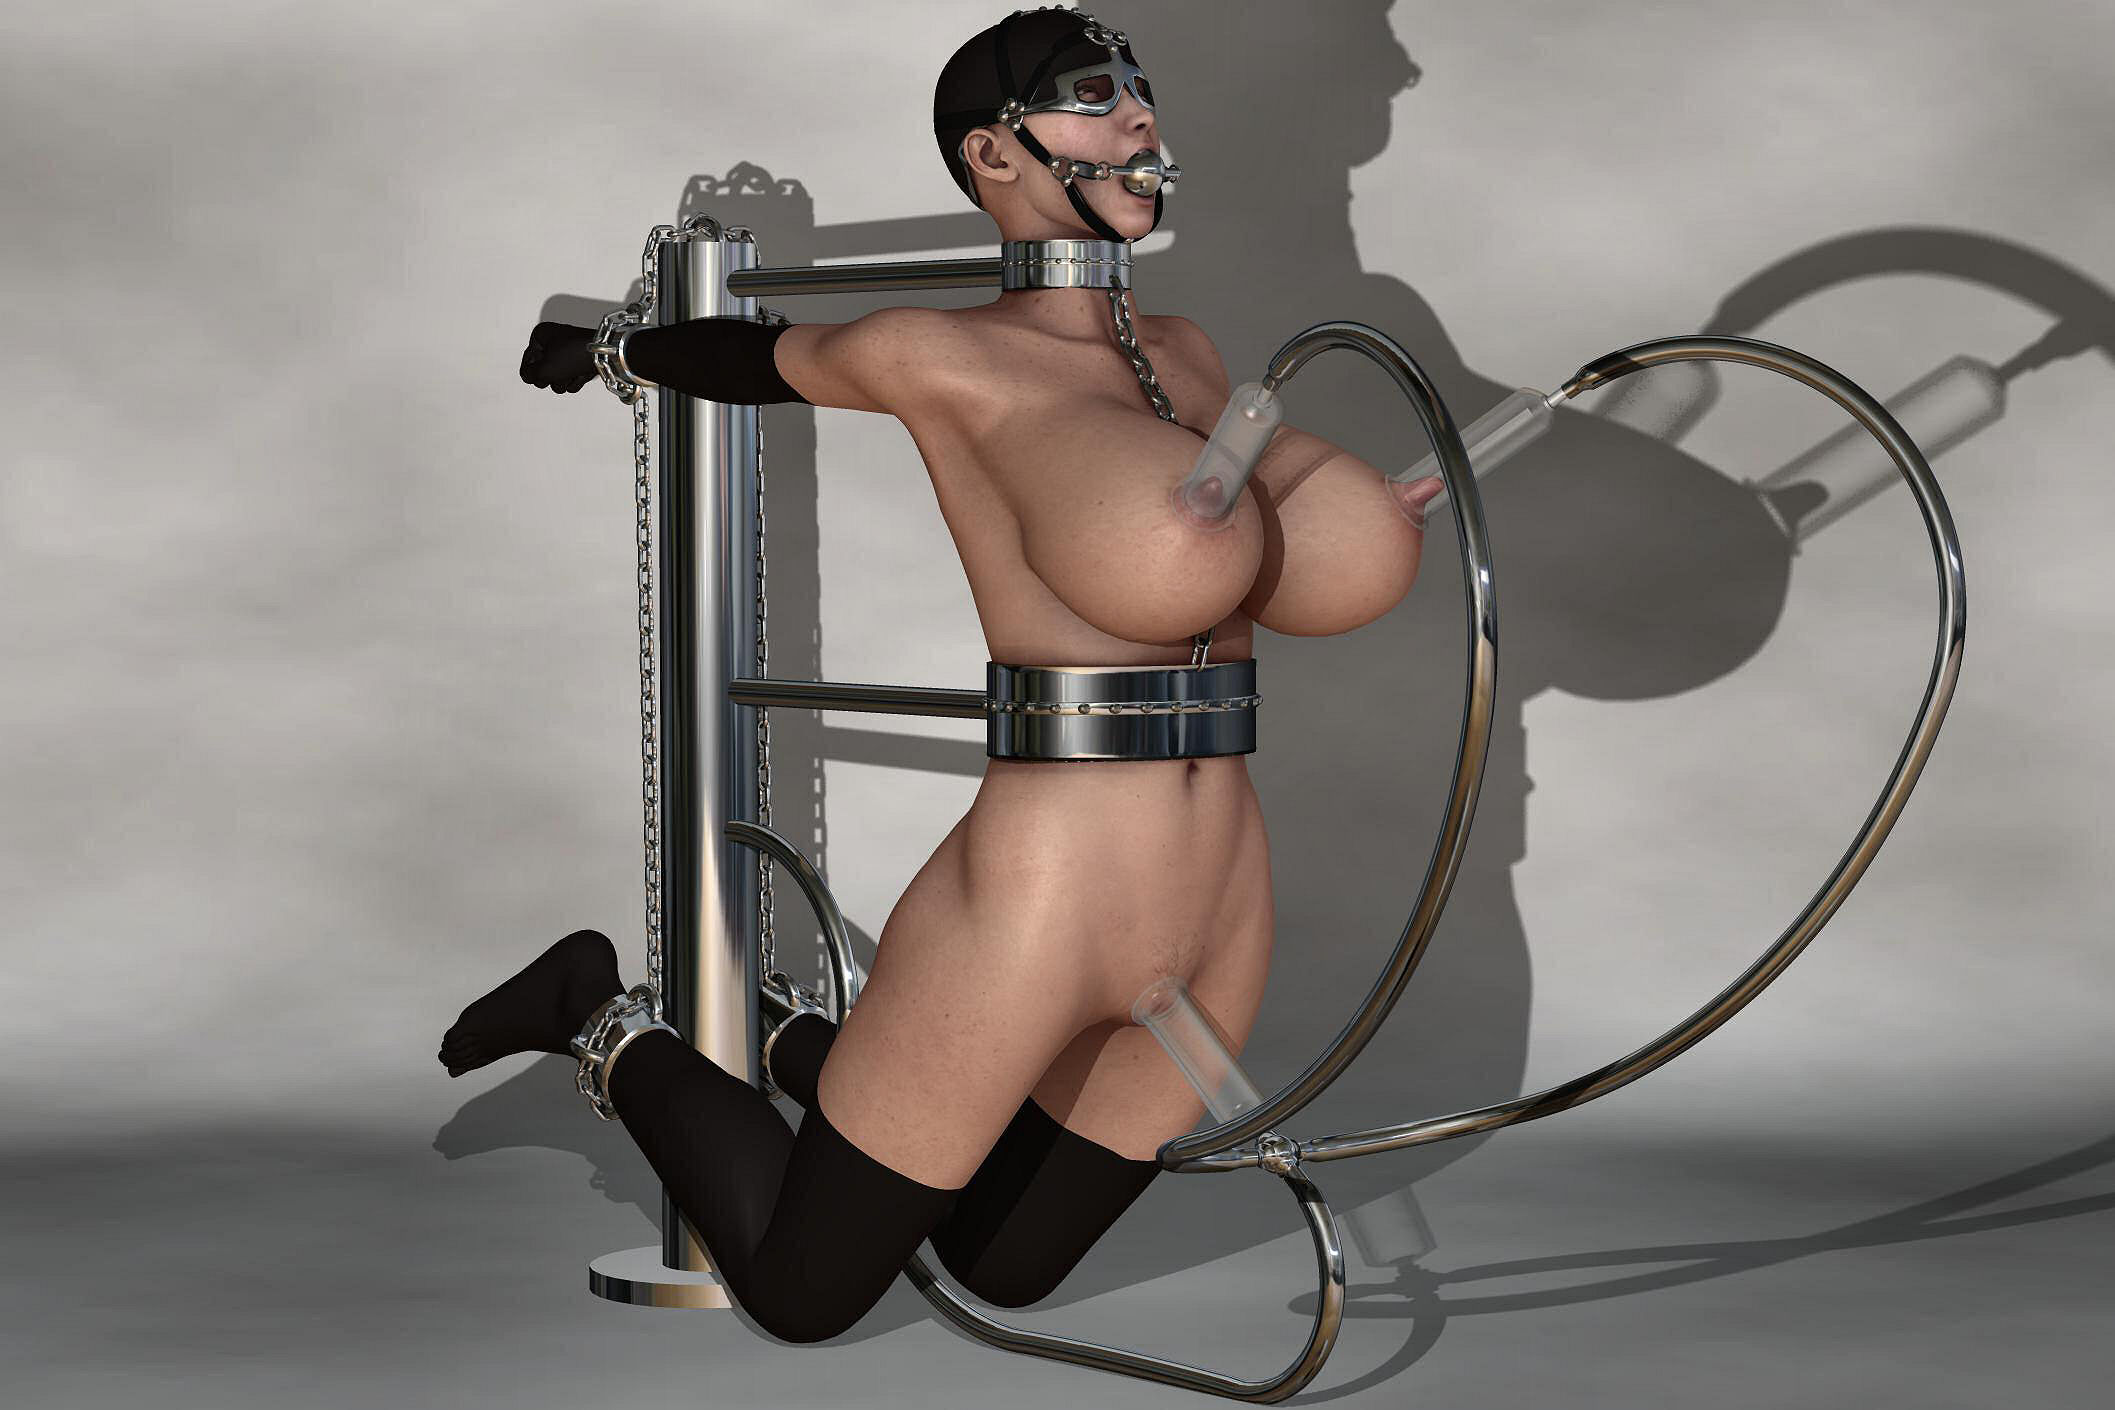 Foto bondage 3d sex film